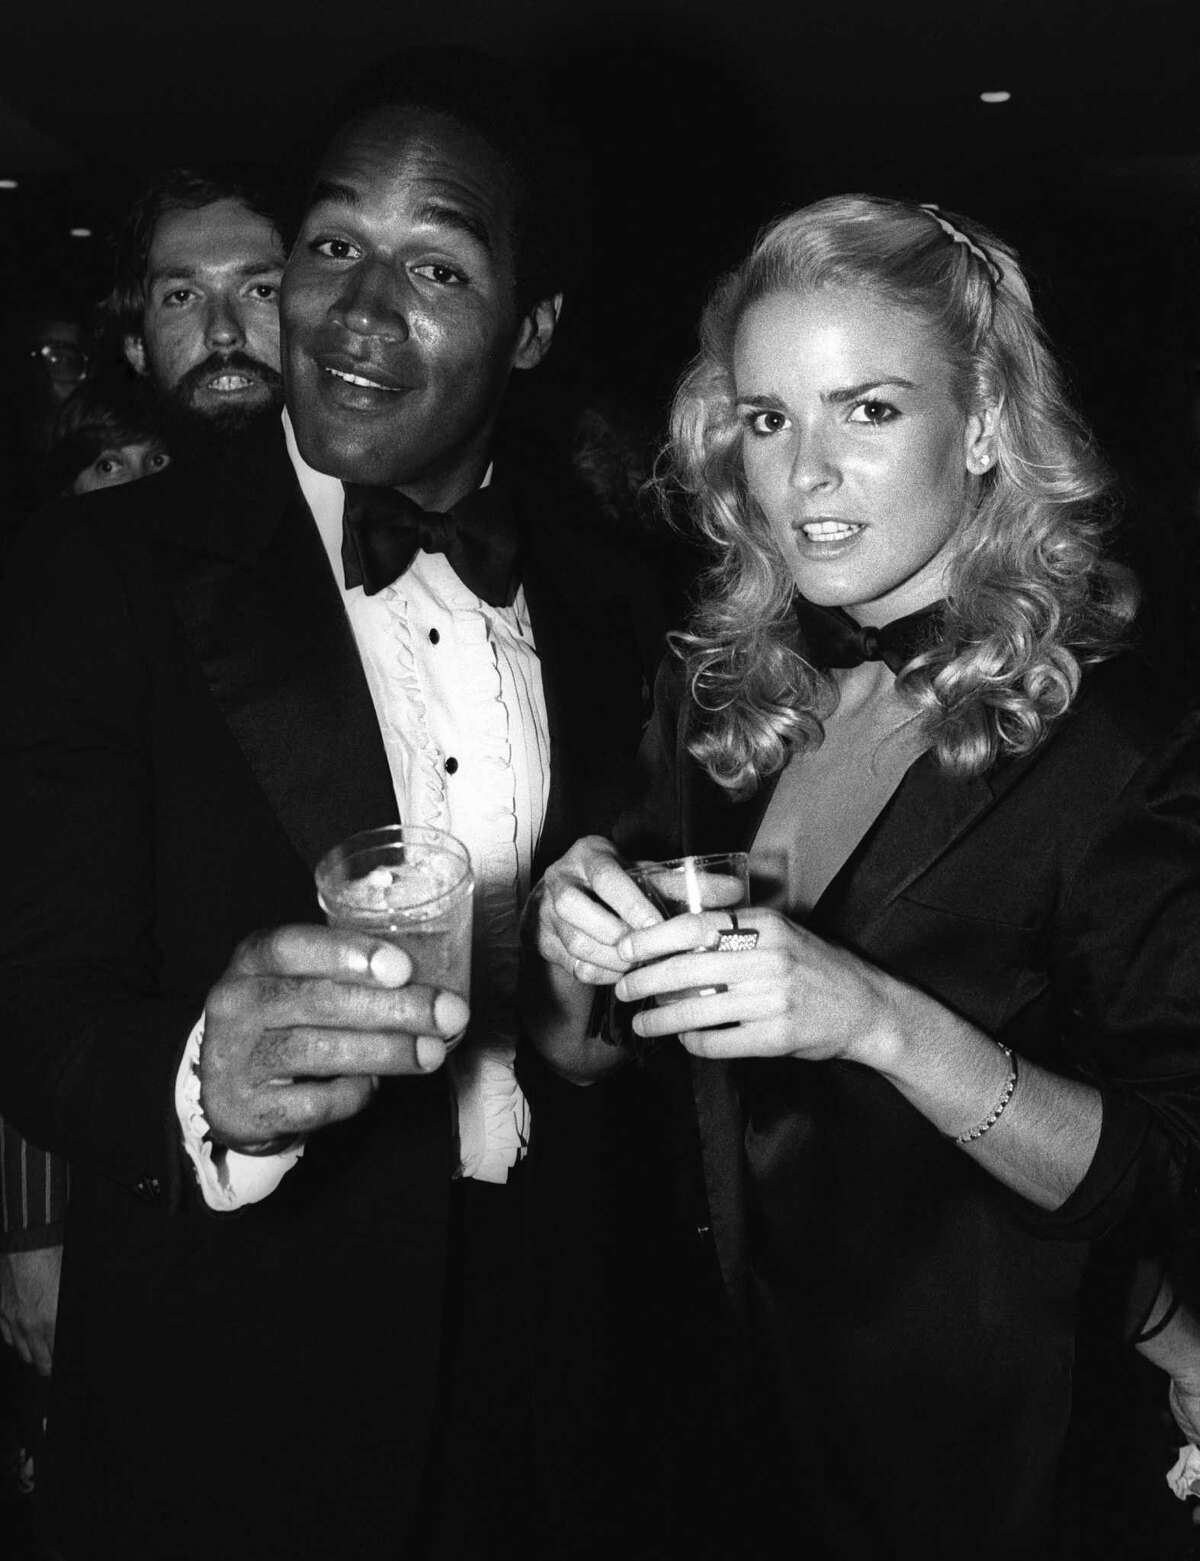 By age 18, the homecoming princess was working at a Beverly Hills club called the Daisy when she first met O.J. Simpson.